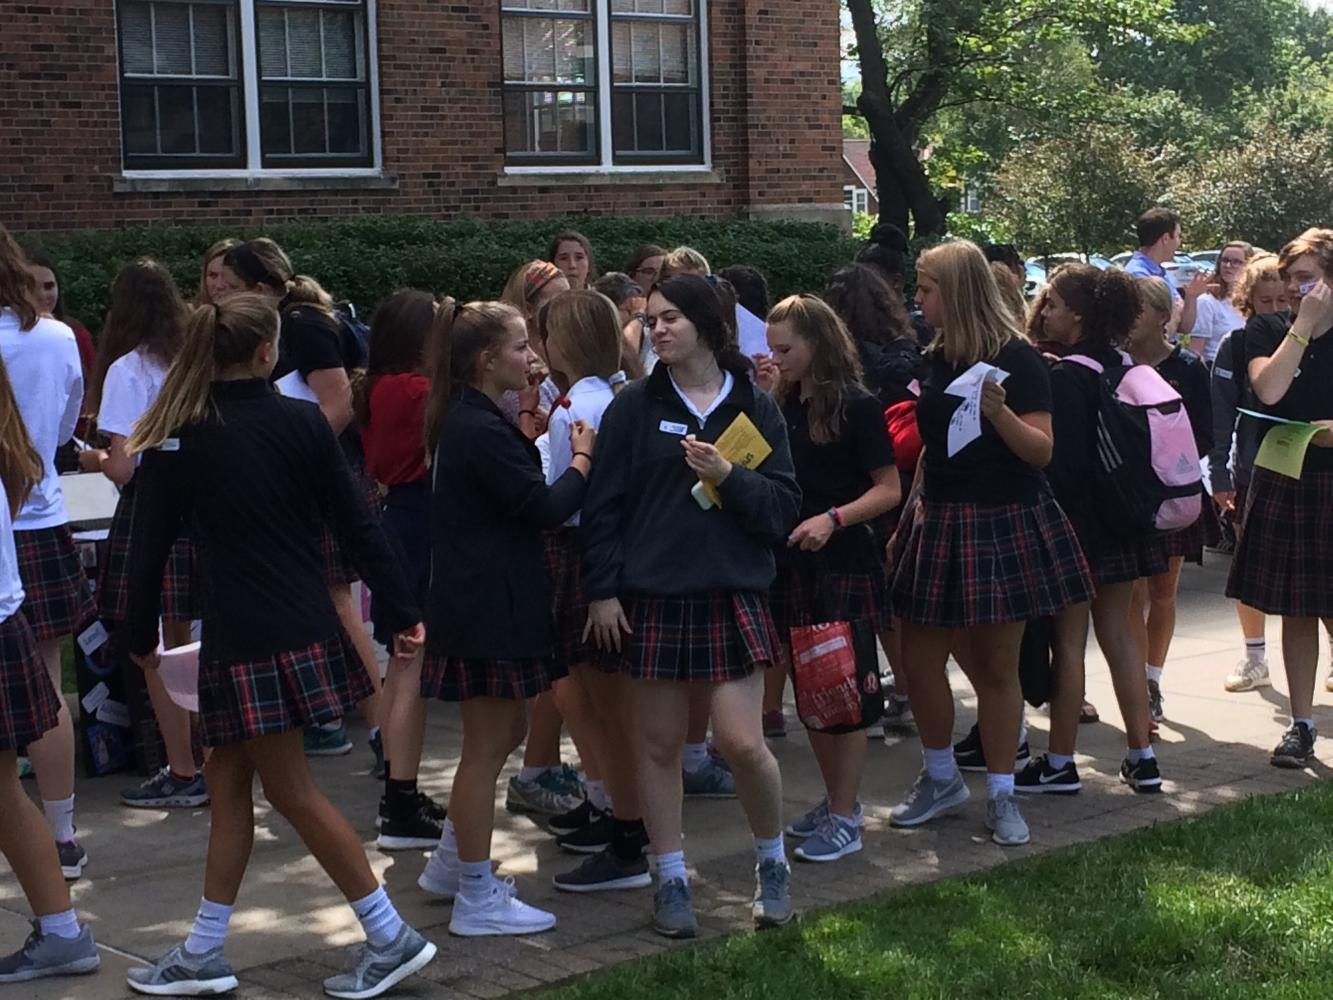 Students+walked+from+table+to+table+outside+of+Donnelly+Hall%2C+where+extracurricular+sign+ups+were+located.+photo+by+Gabby+Staker